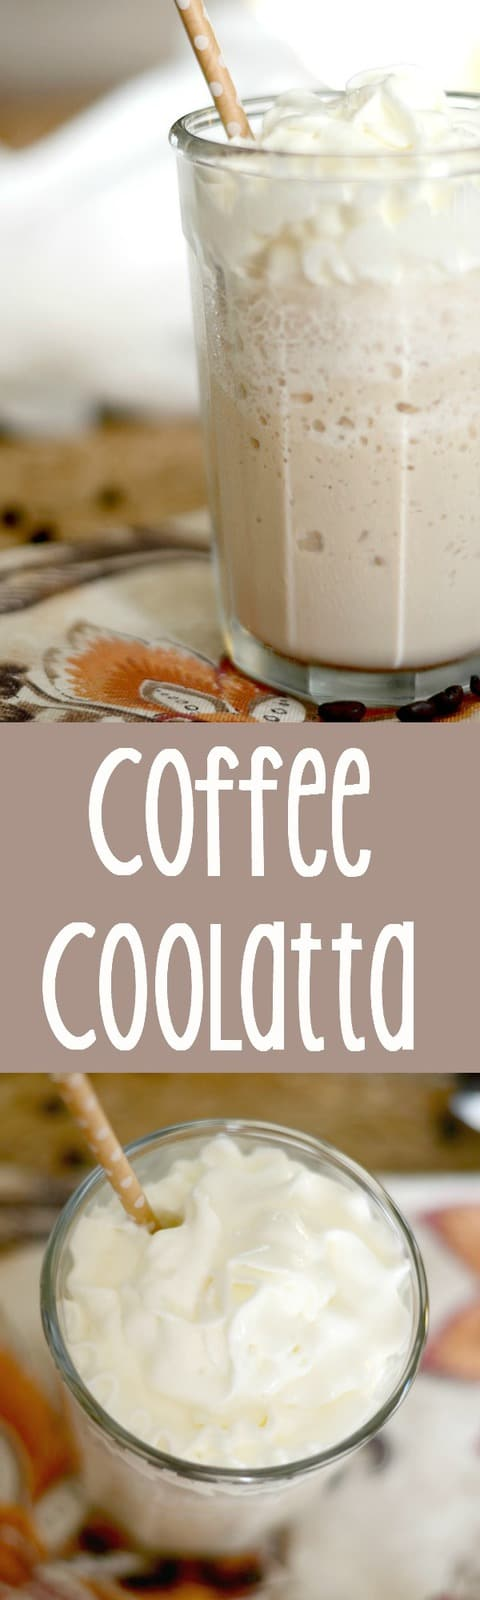 Make your own Dunkin Donuts Coffee Coolatta at home with this copycat recipe.